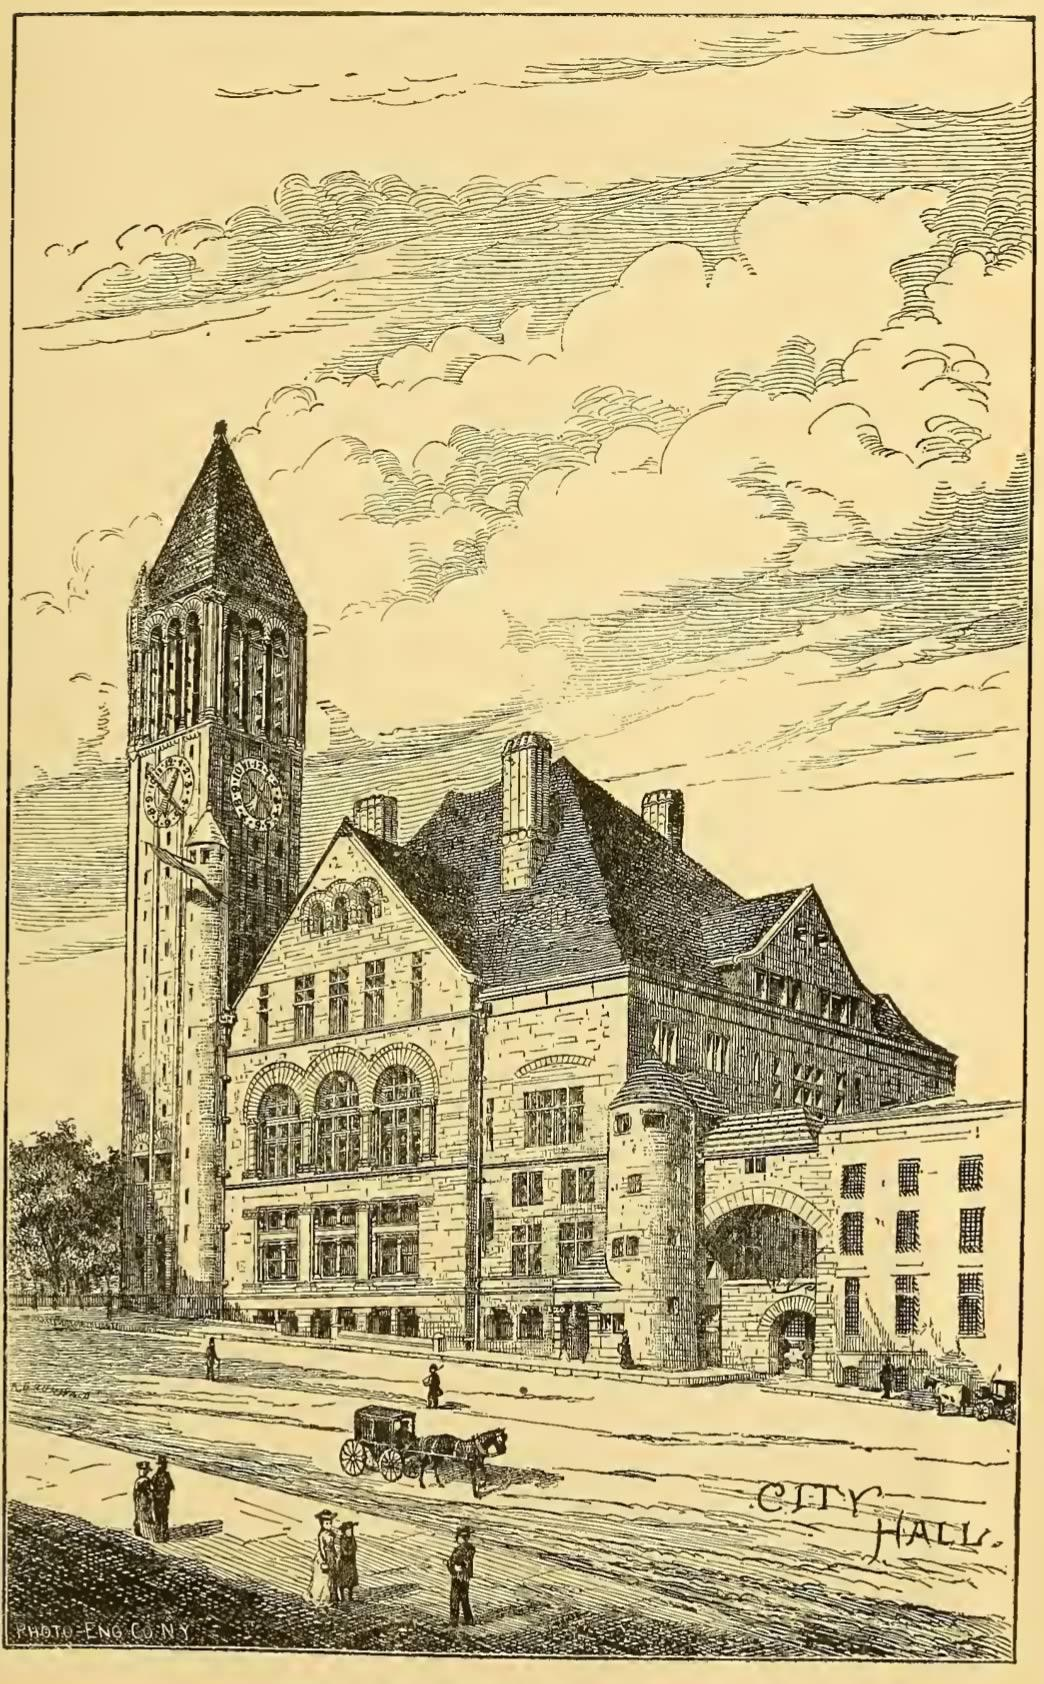 History of Albany Weise city hall